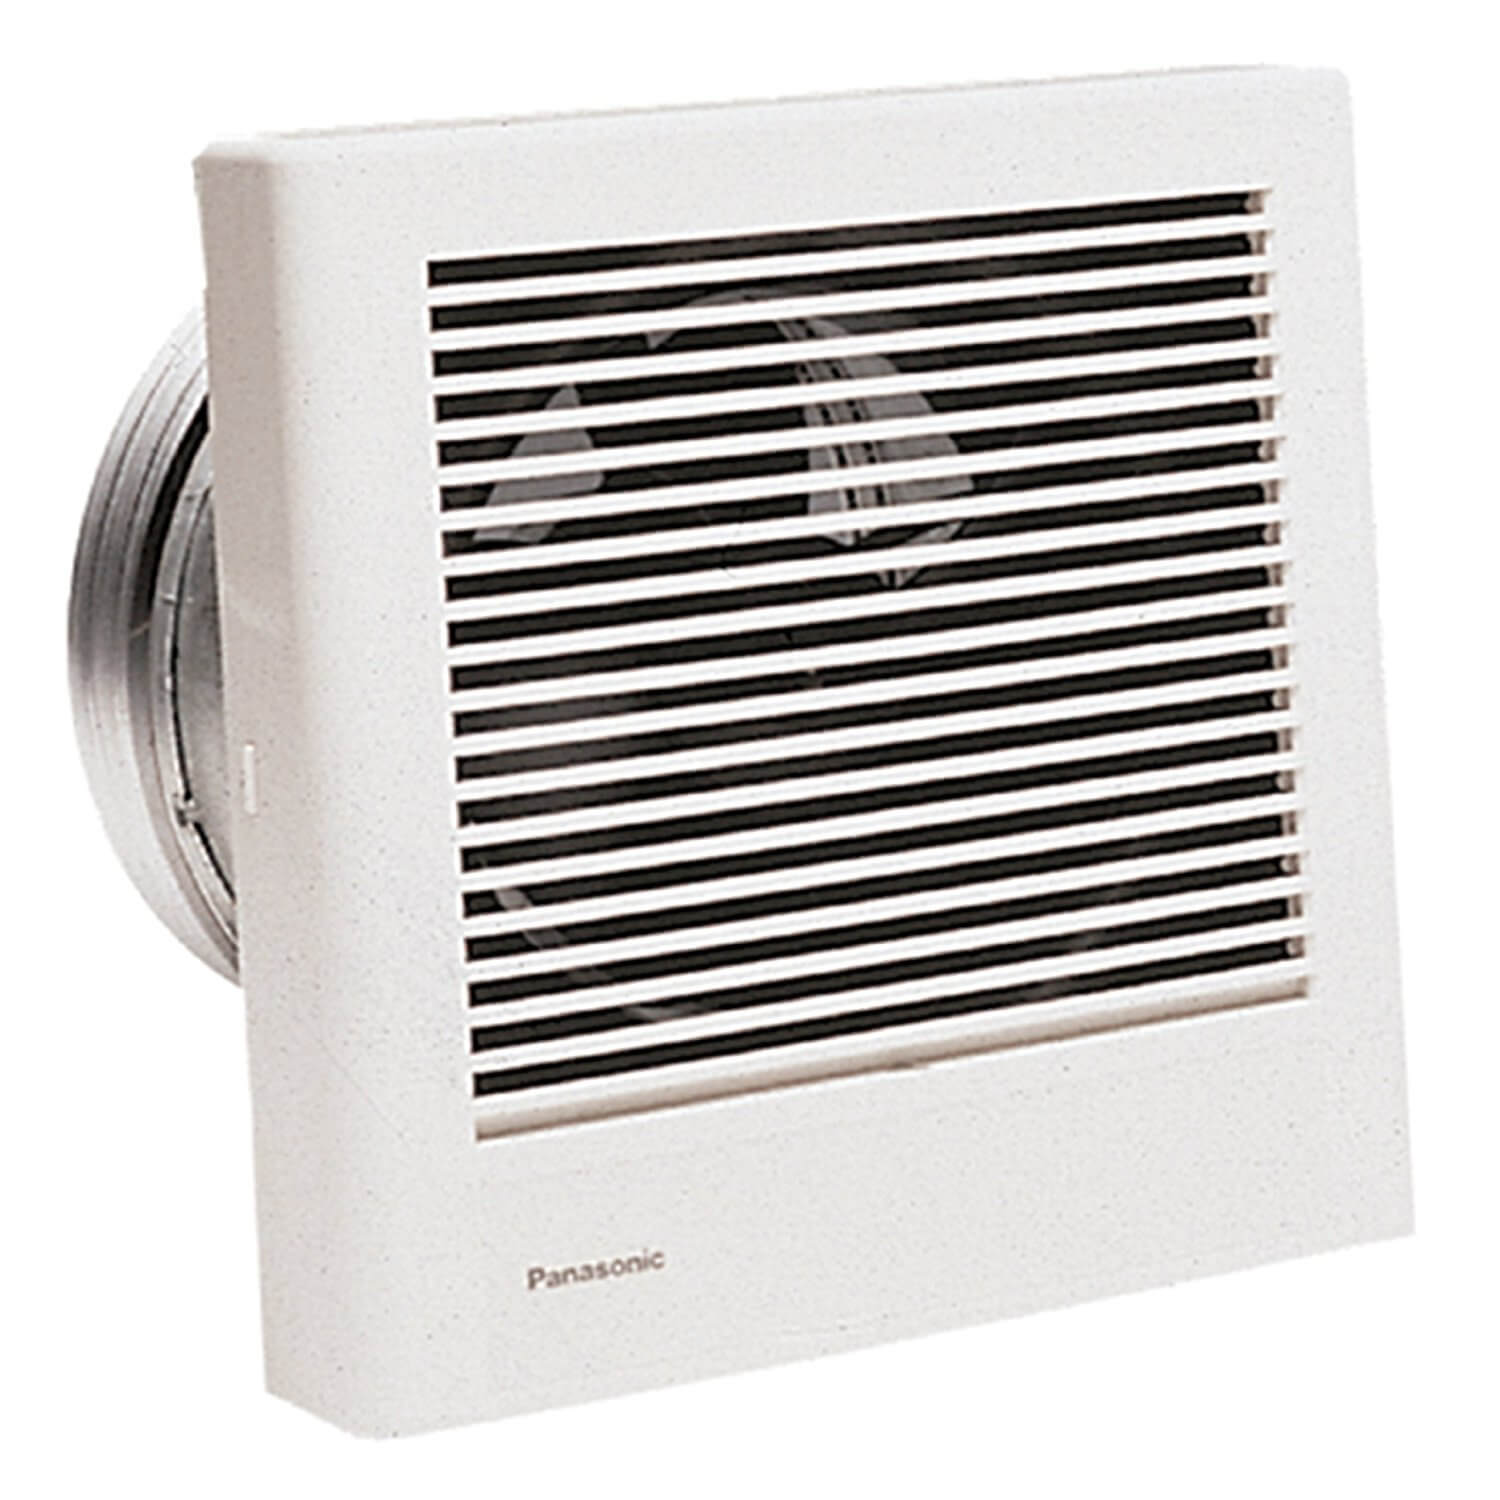 Merveilleux Panasonic FV 08WQ1 WhisperWall 70 CFM Wall Mounted Fan